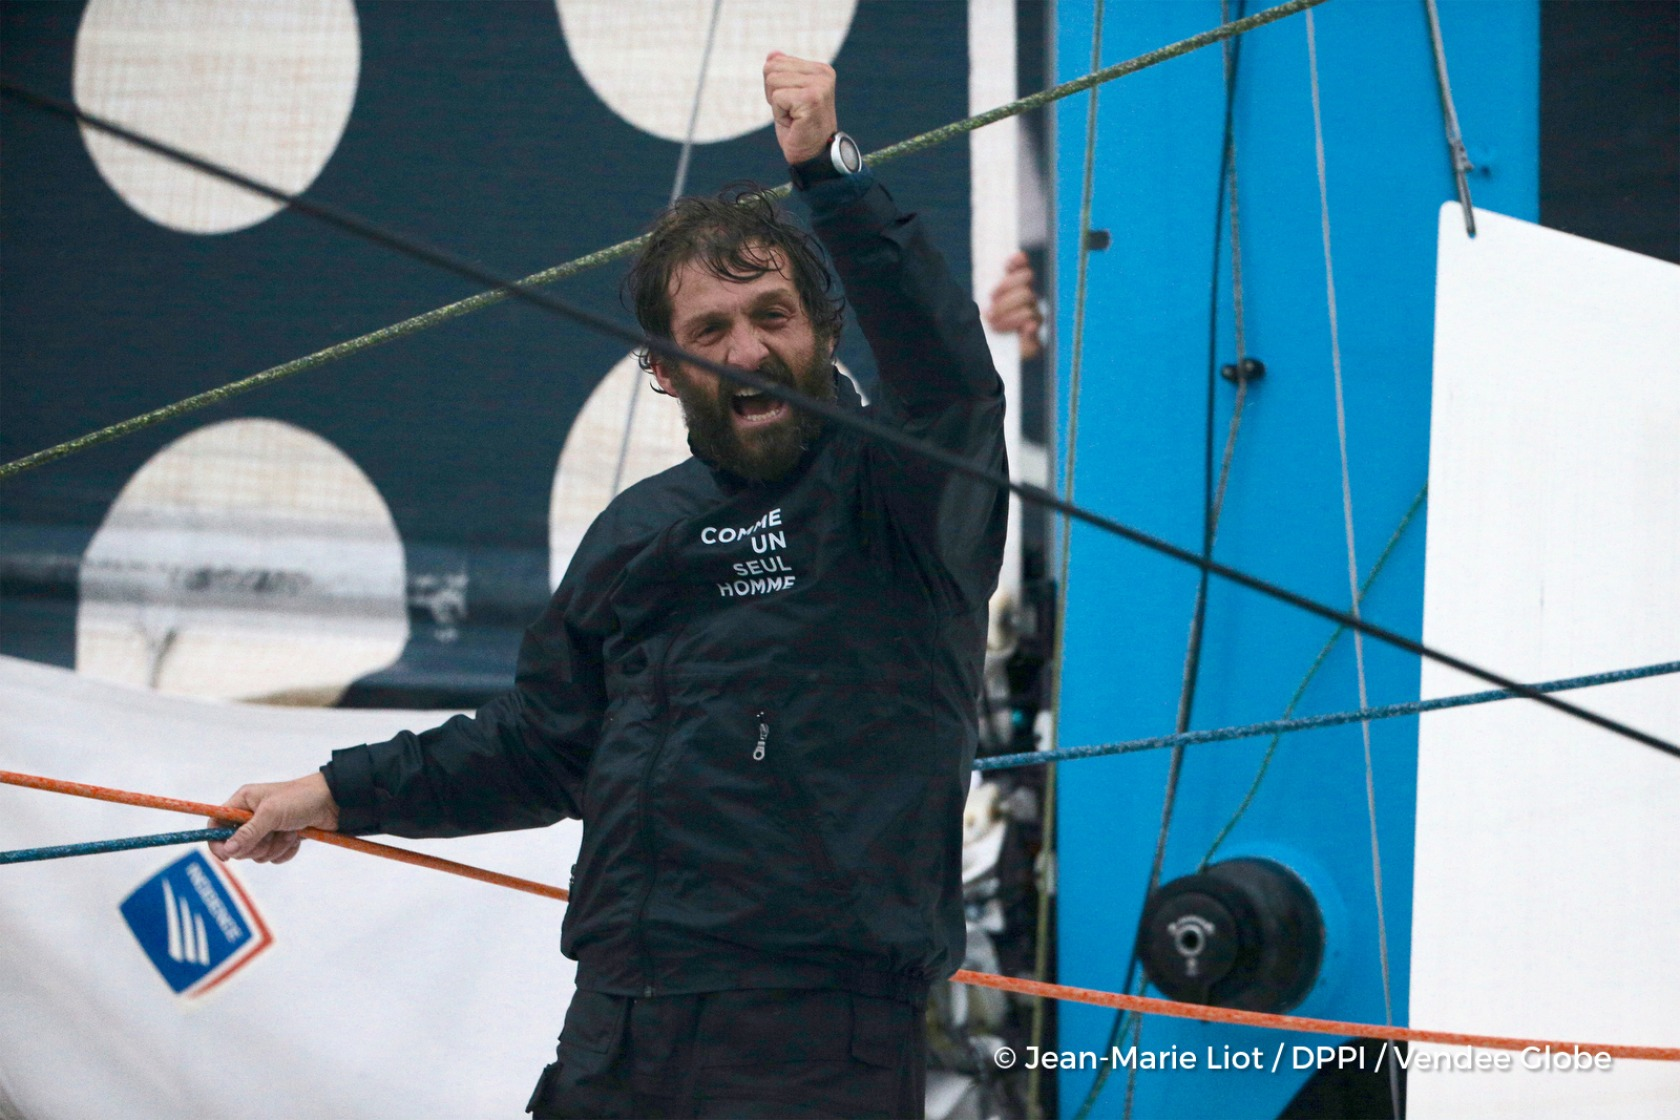 Finish arrival of Eric Bellion (FRA), skipper Comme Un Seul Homme, 9th of the sailing circumnavigation solo race Vendee Globe, in Les Sables d'Olonne, France, on February 13th, 2017 - Photo Jean-Marie Liot / DPPI / Vendee GlobeArrivée de Eric Bellion (FRA), skipper Comme Un Seul Homme, 9ème du Vendee Globe, aux Sables d'Olonne, France, le 13 Février 2017 - Photo Jean-Marie Liot / DPPI / Vendee G